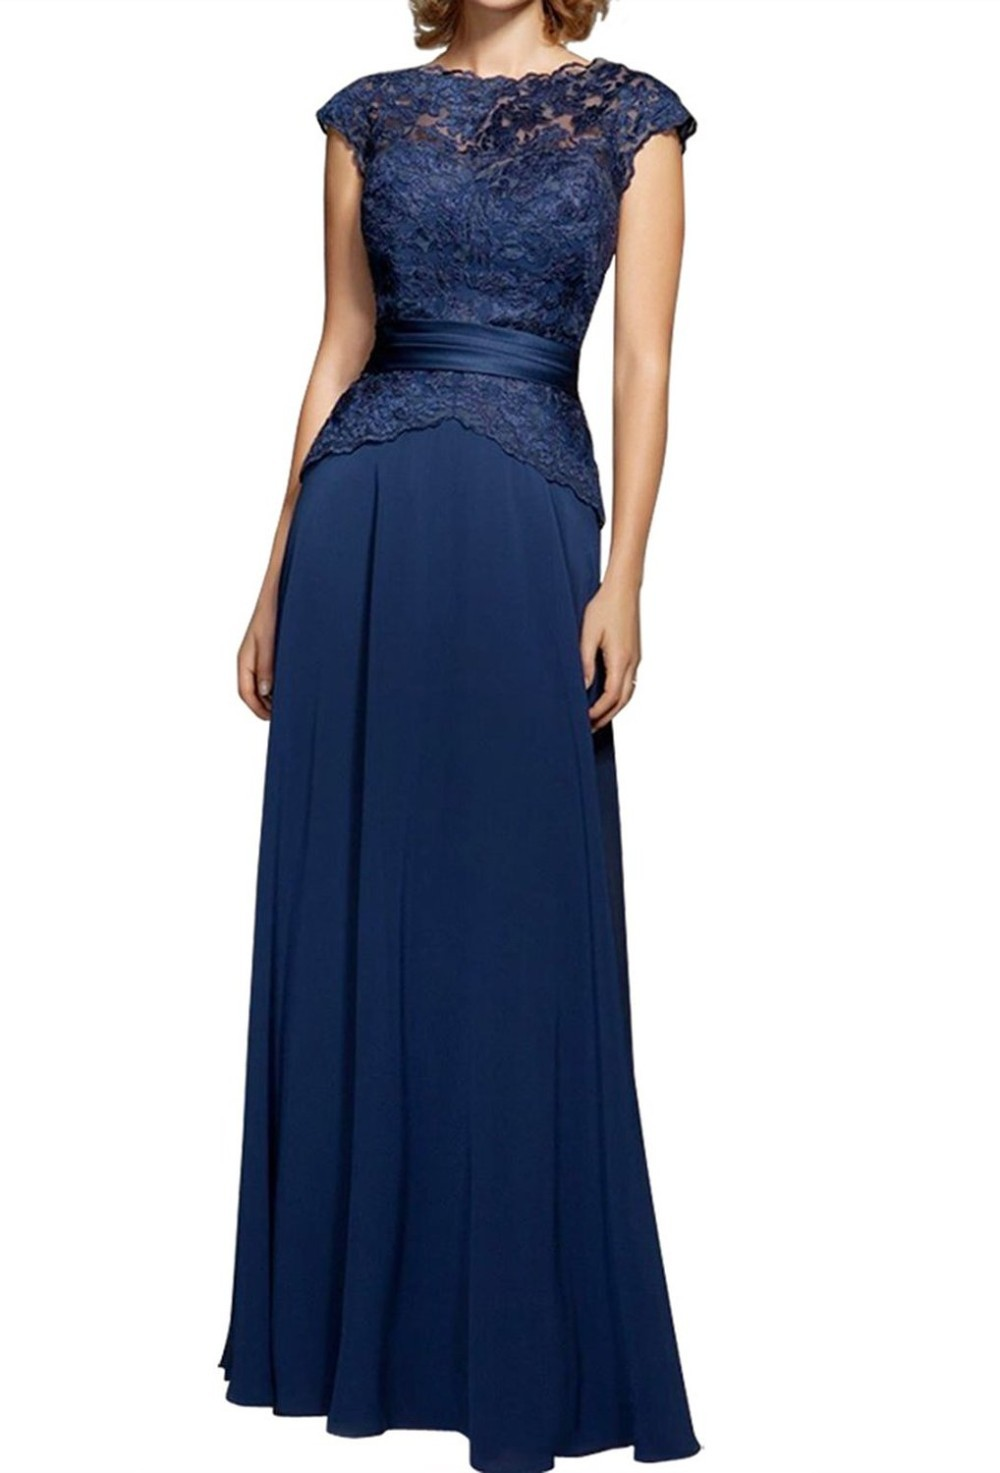 2015 New Style Dress For Mother Of The Bride Navy Blue Chiffon Women Evening Long Dress Lace Bodice